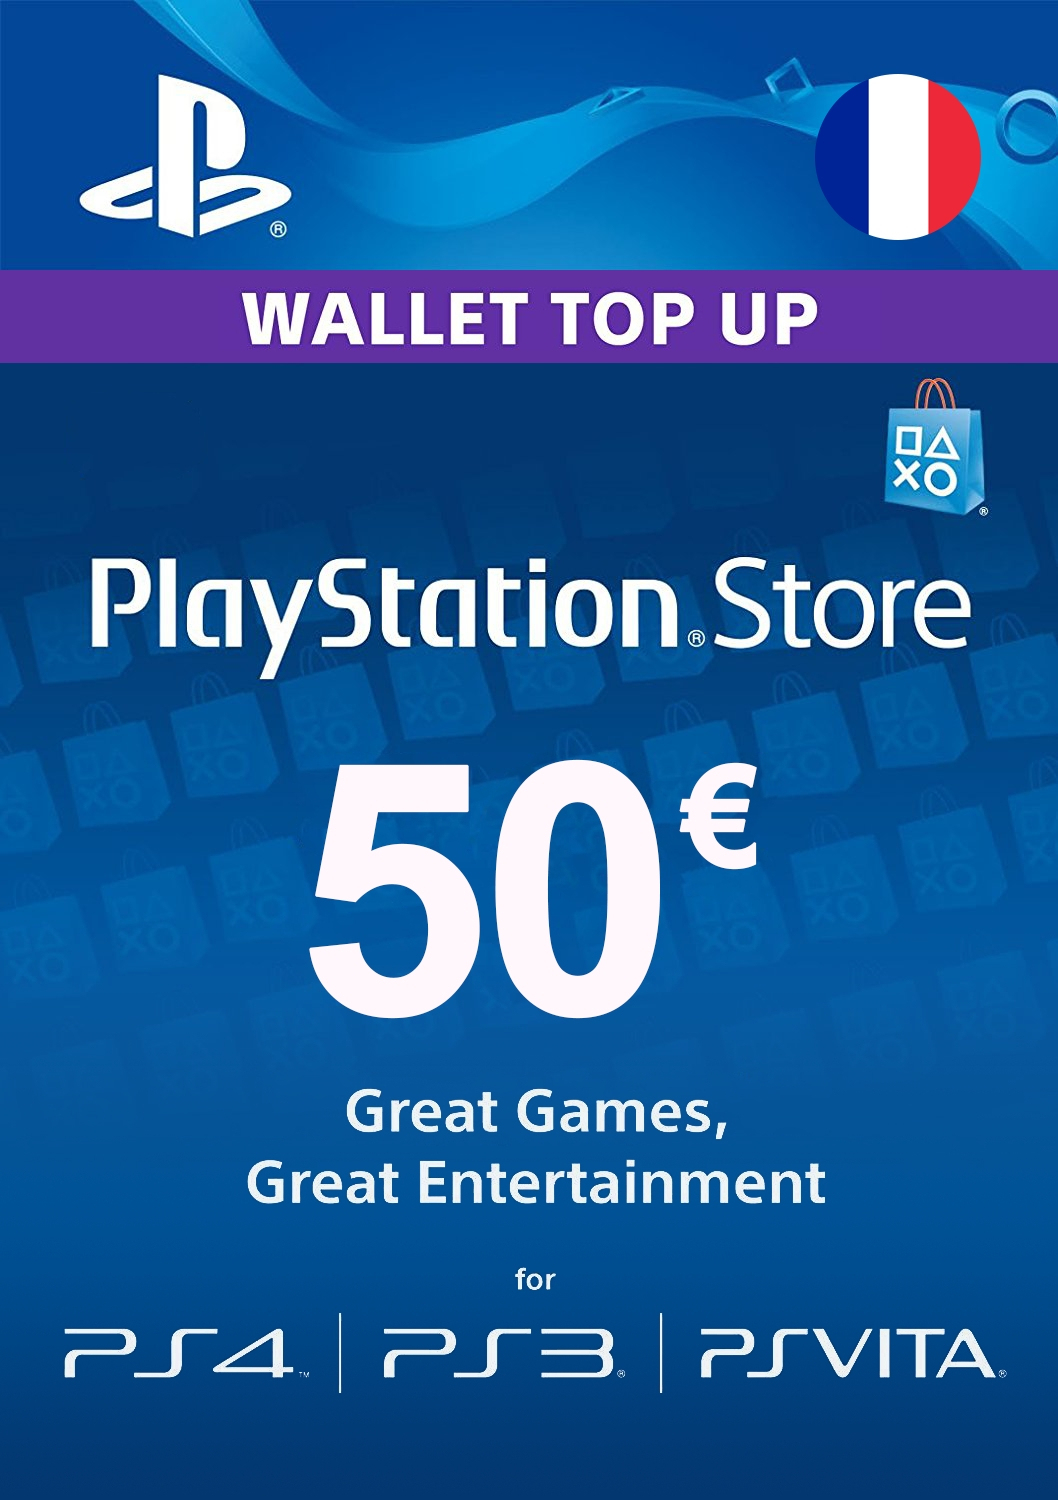 Acheter Carte Playstation Network 50€ (France) Playstation pour Acheter Carte De France